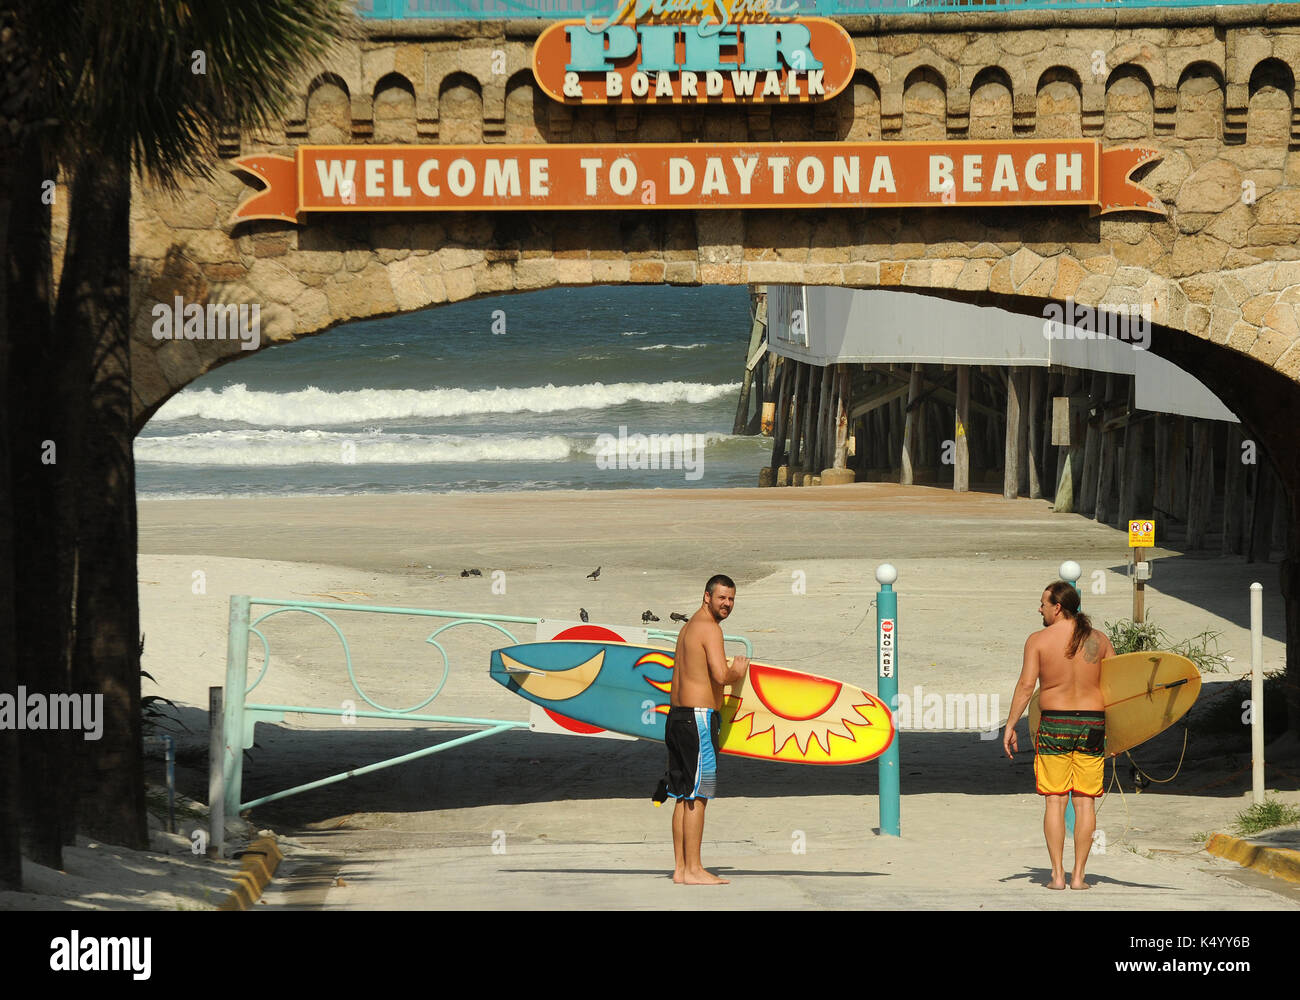 Daytona Beach, United States. 07th Sep, 2017. September 7, 2017- Daytona Beach, Florida, United States - Two men carrying surf boards head to the ocean in Daytona Beach on September 7, 2017 as Hurricane Irma approaches the state of Florida as a category 5 storm. Credit: Paul Hennessy/Alamy Live News - Stock Image